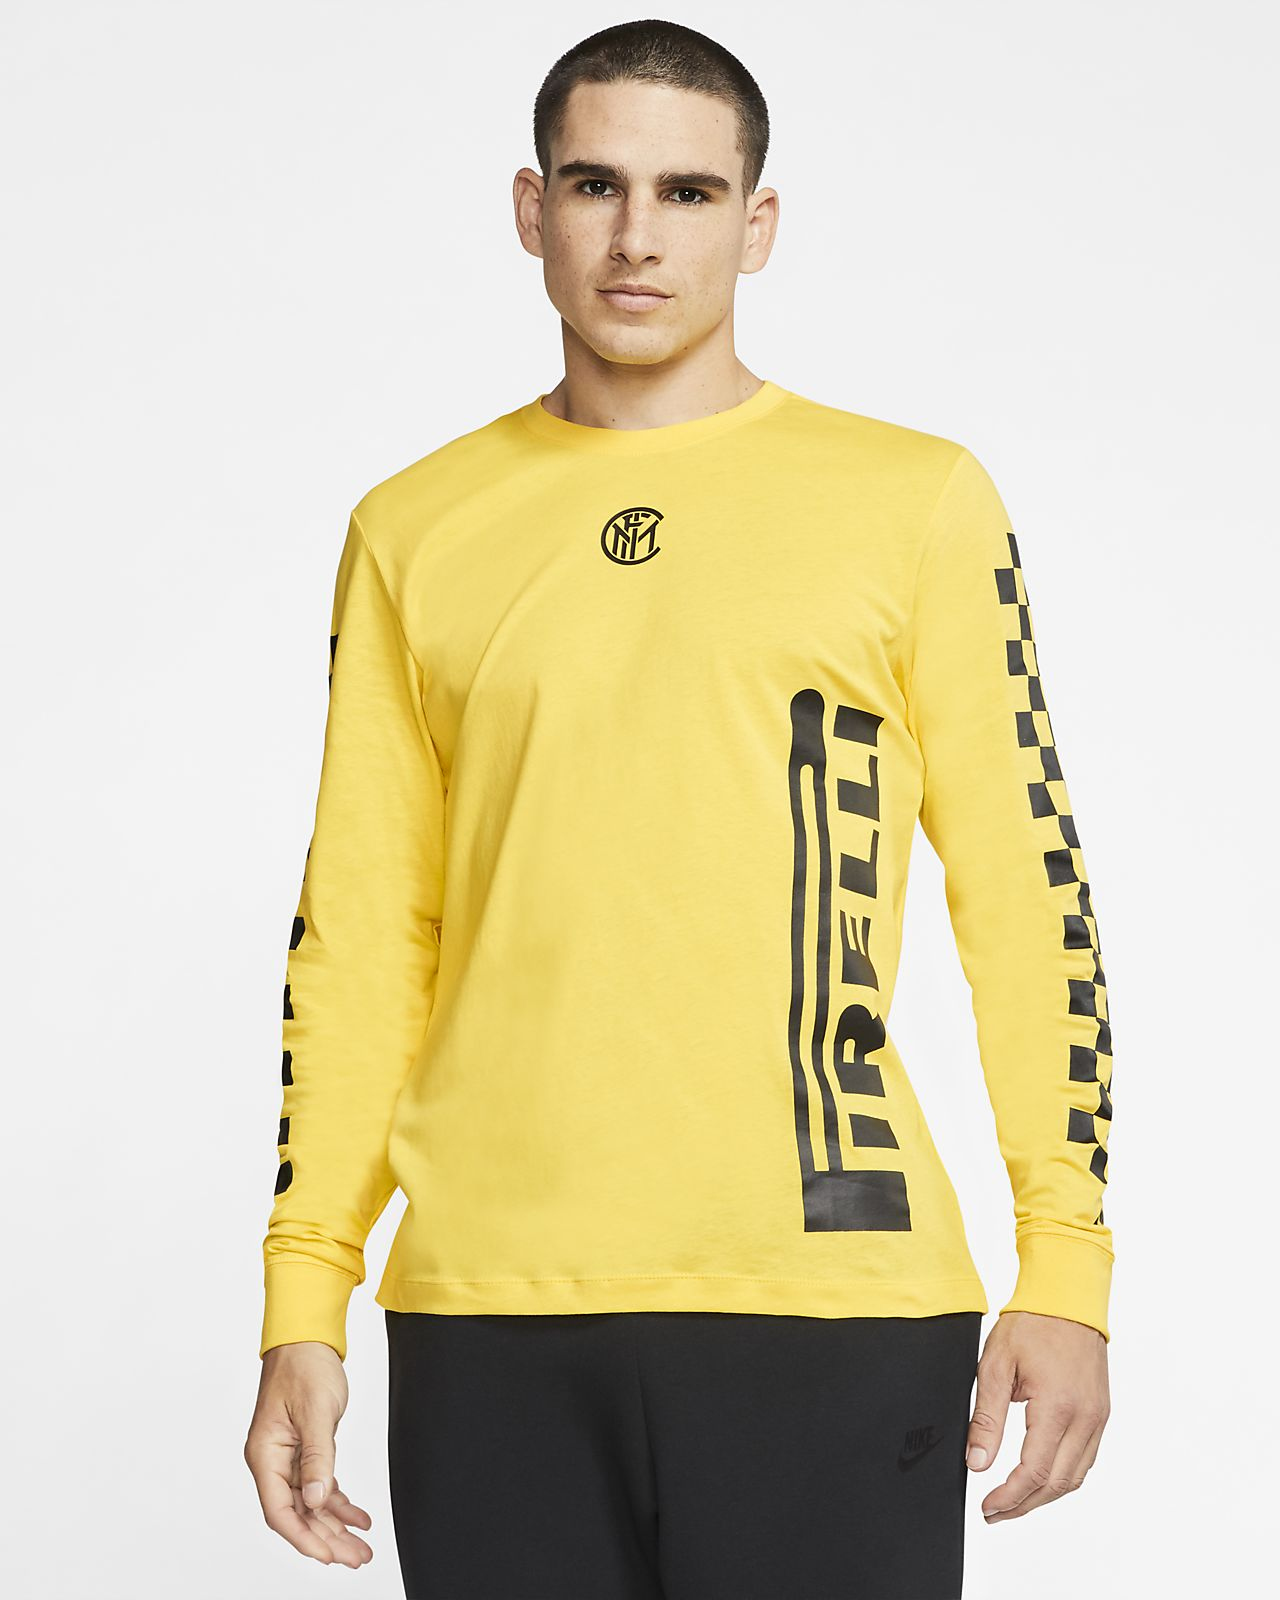 Inter Milan Men's Long-Sleeve T-Shirt